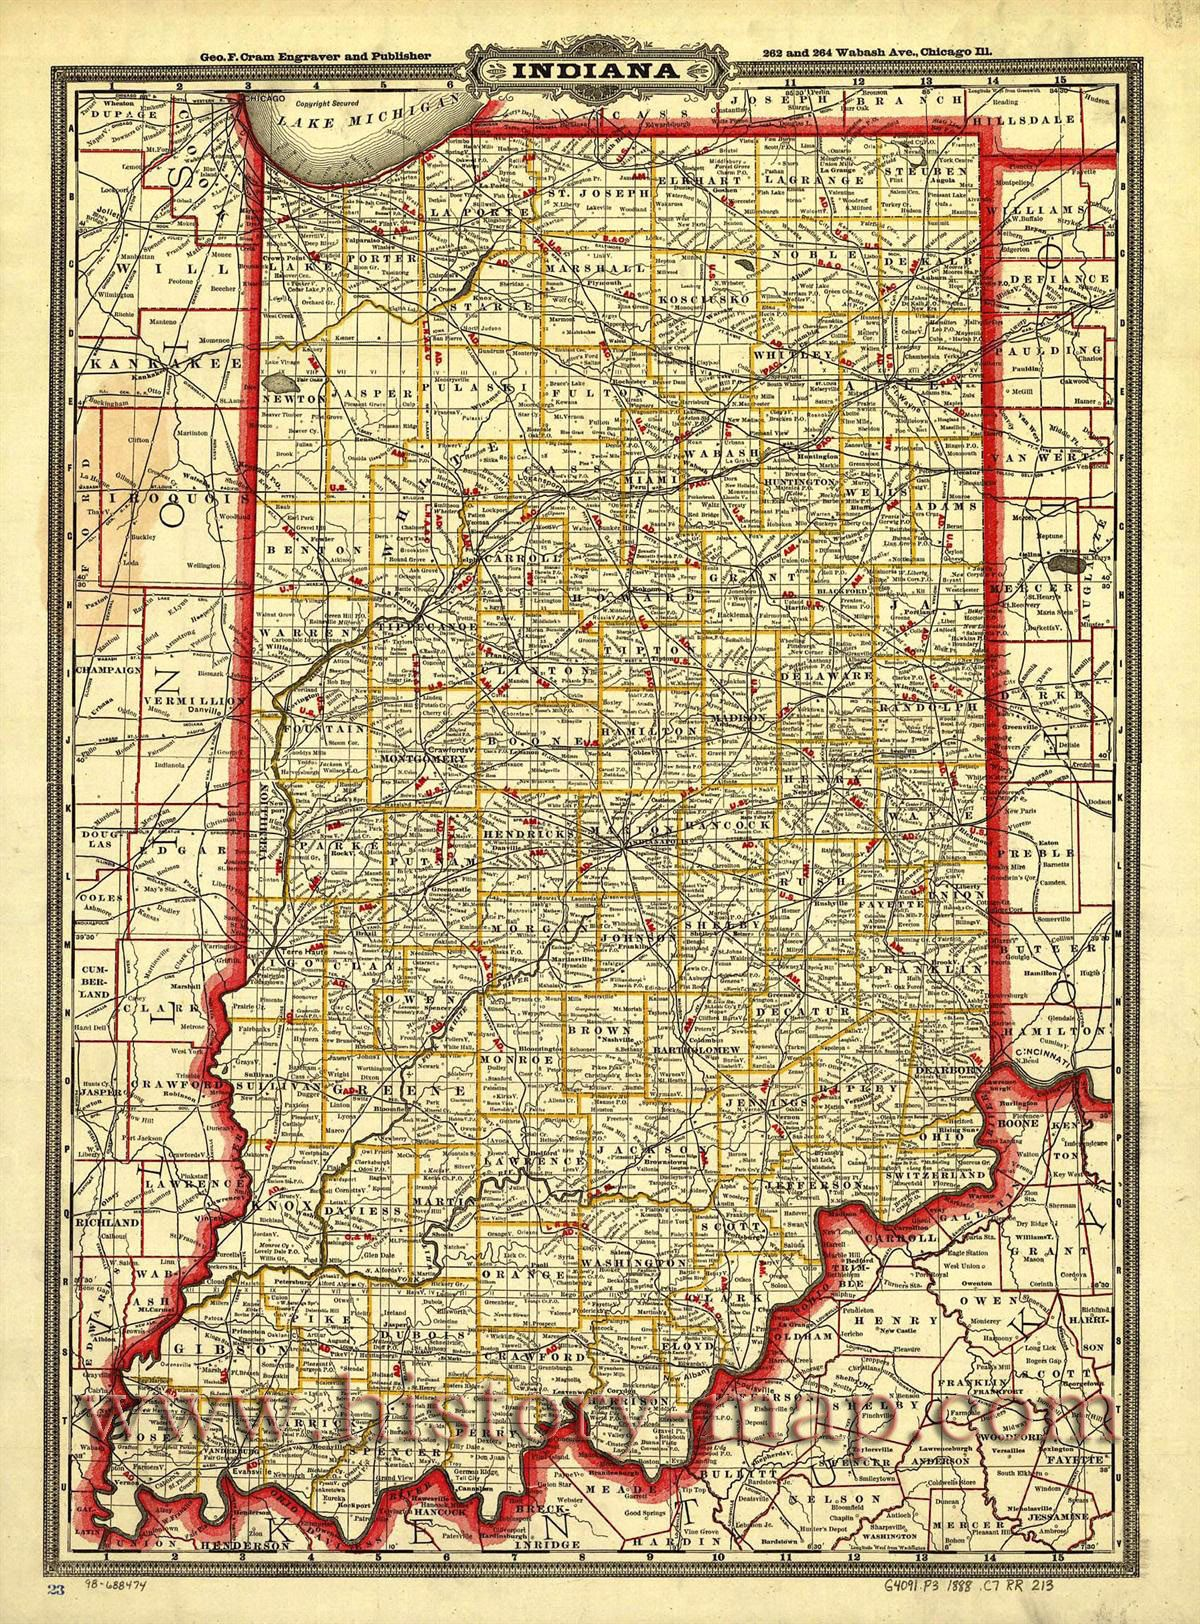 township and railroad map of Indiana taken in 1888 Shows ... on indiana gas line maps, indiana breweries list, indiana industrial map, wayne county michigan zip code map, central of georgia map, indiana railroads 1950s, indiana utilities map, us 40 indiana map, monon indiana map, norfolk & western map, big indiana state map, cleveland rail map, indiana electrical lines, indiana ohio railway company, indiana truck map, indiana outline vector, indiana trains, minnesota commercial railway map, big pine creek indiana map, indiana interurban,